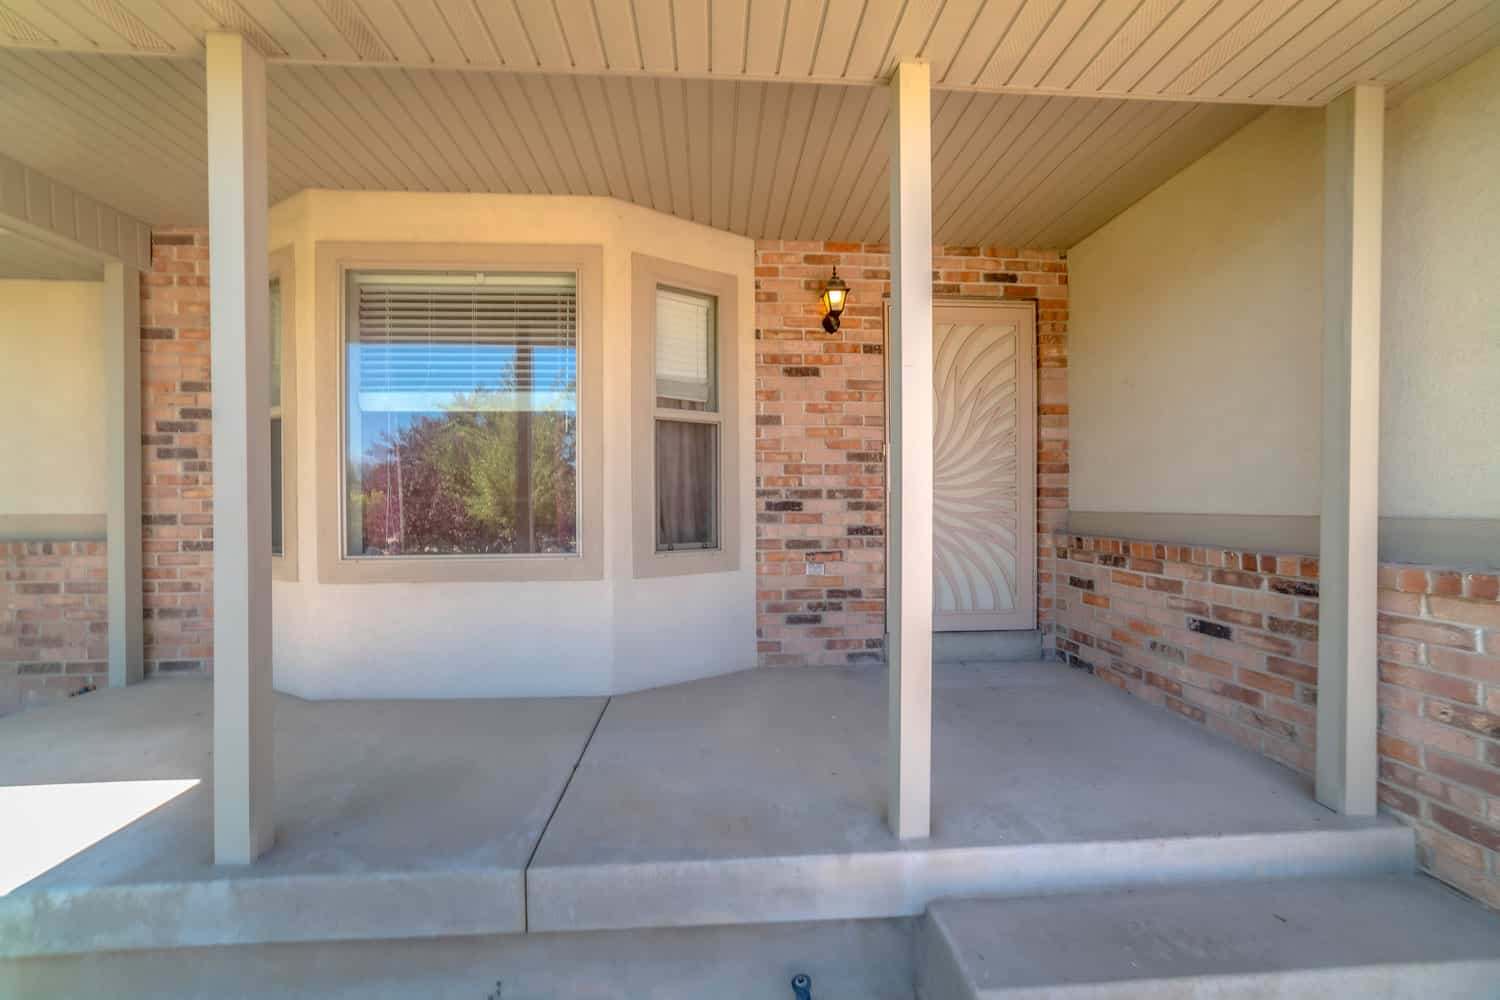 A modern front porch with decorative red brick design